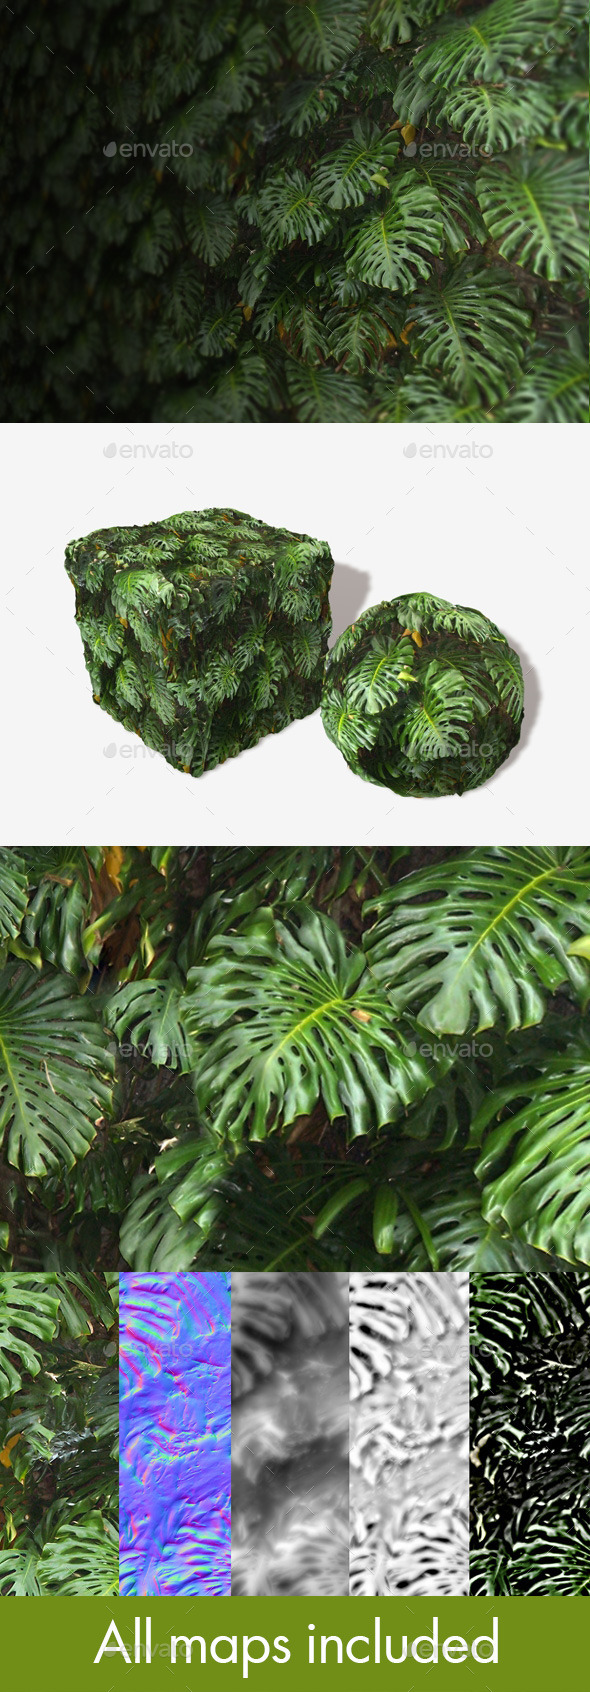 Jungle Background Seamless Texture - 3DOcean Item for Sale